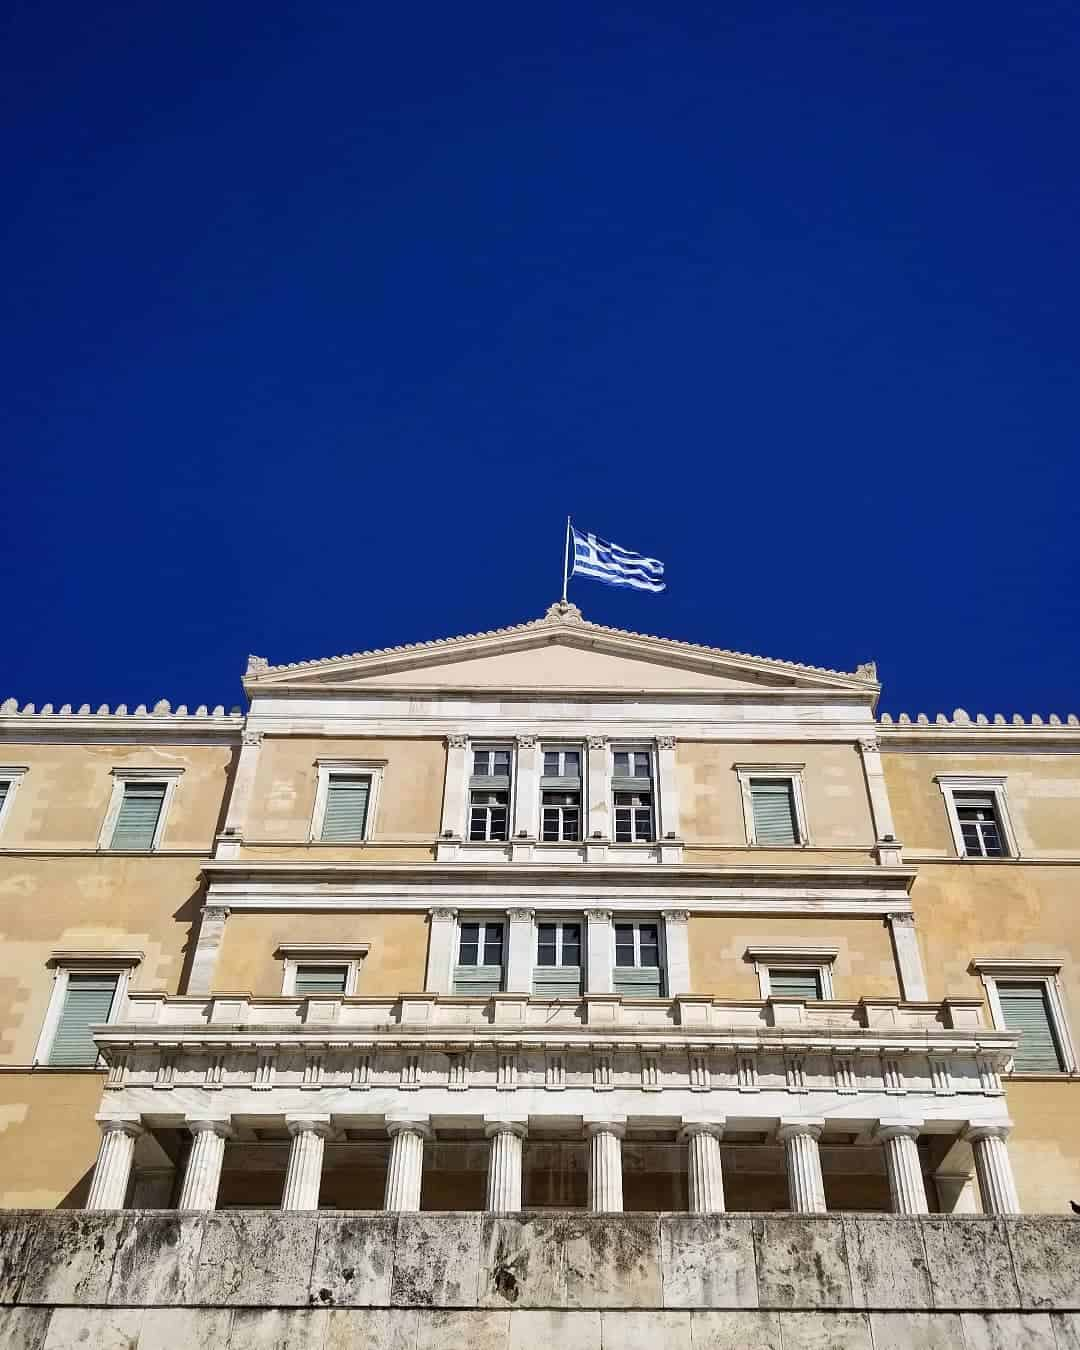 Syntagma Square: The Athens Parliament Building